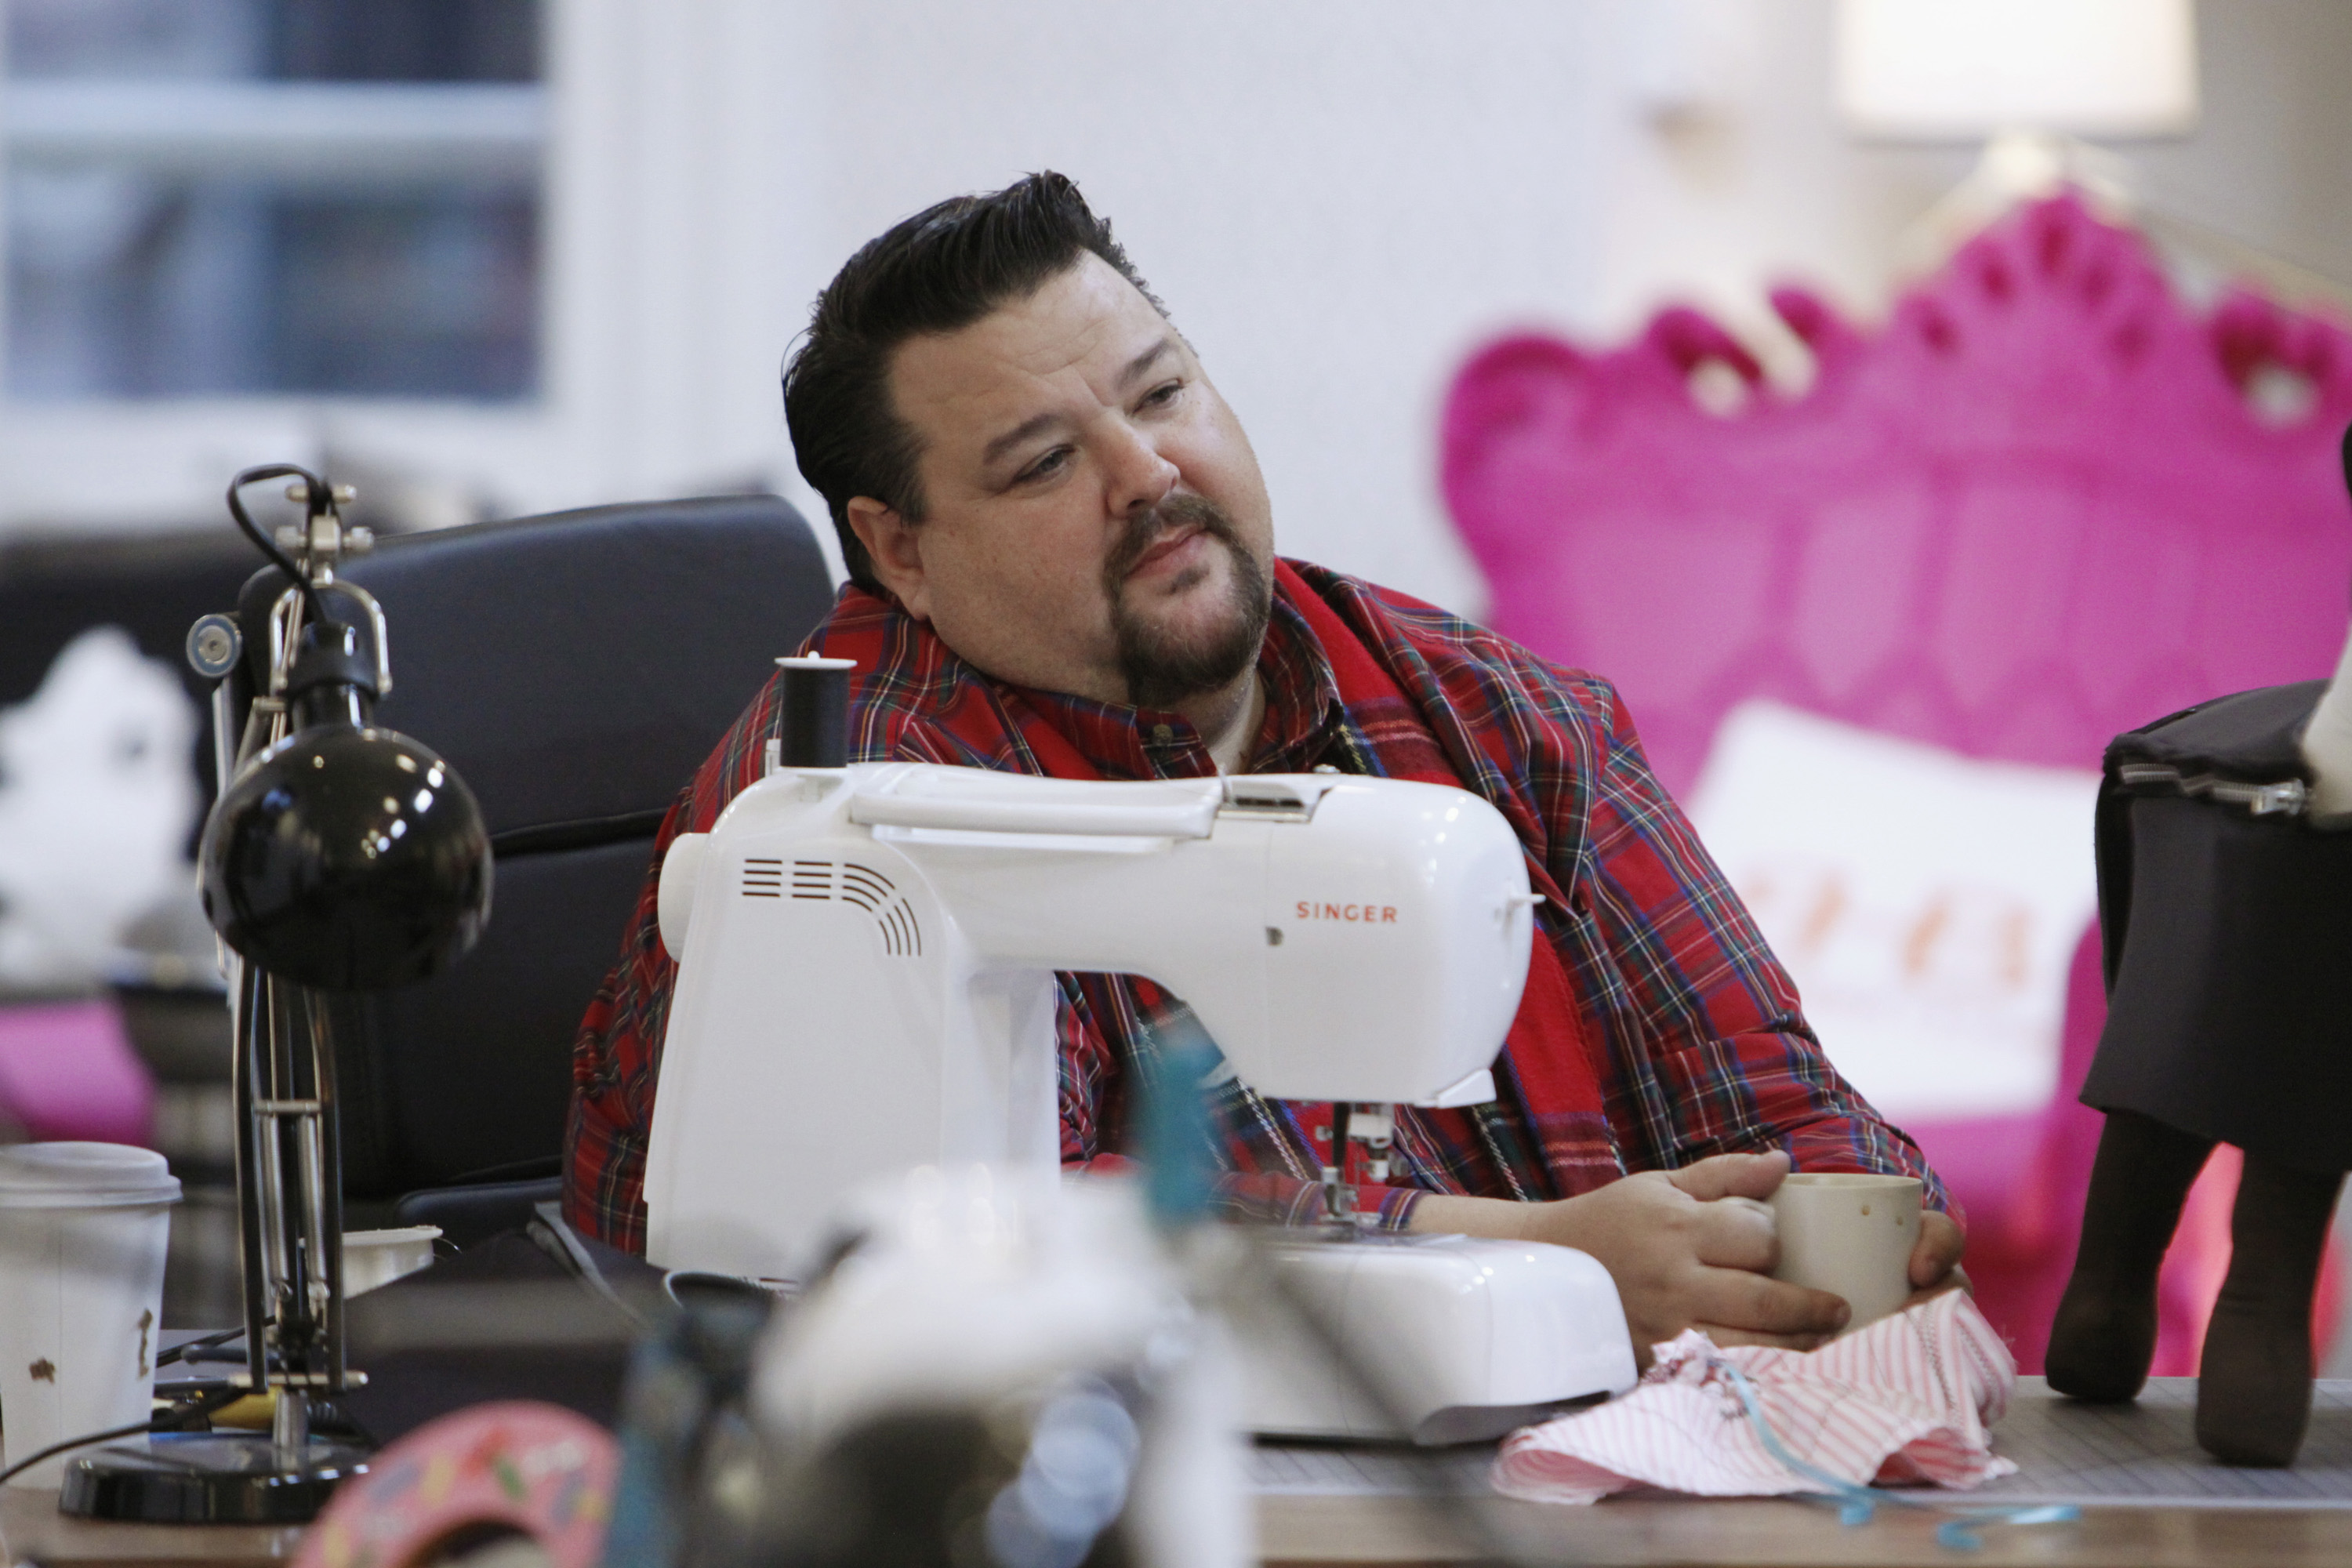 Project Runway star Chris March dies at 56